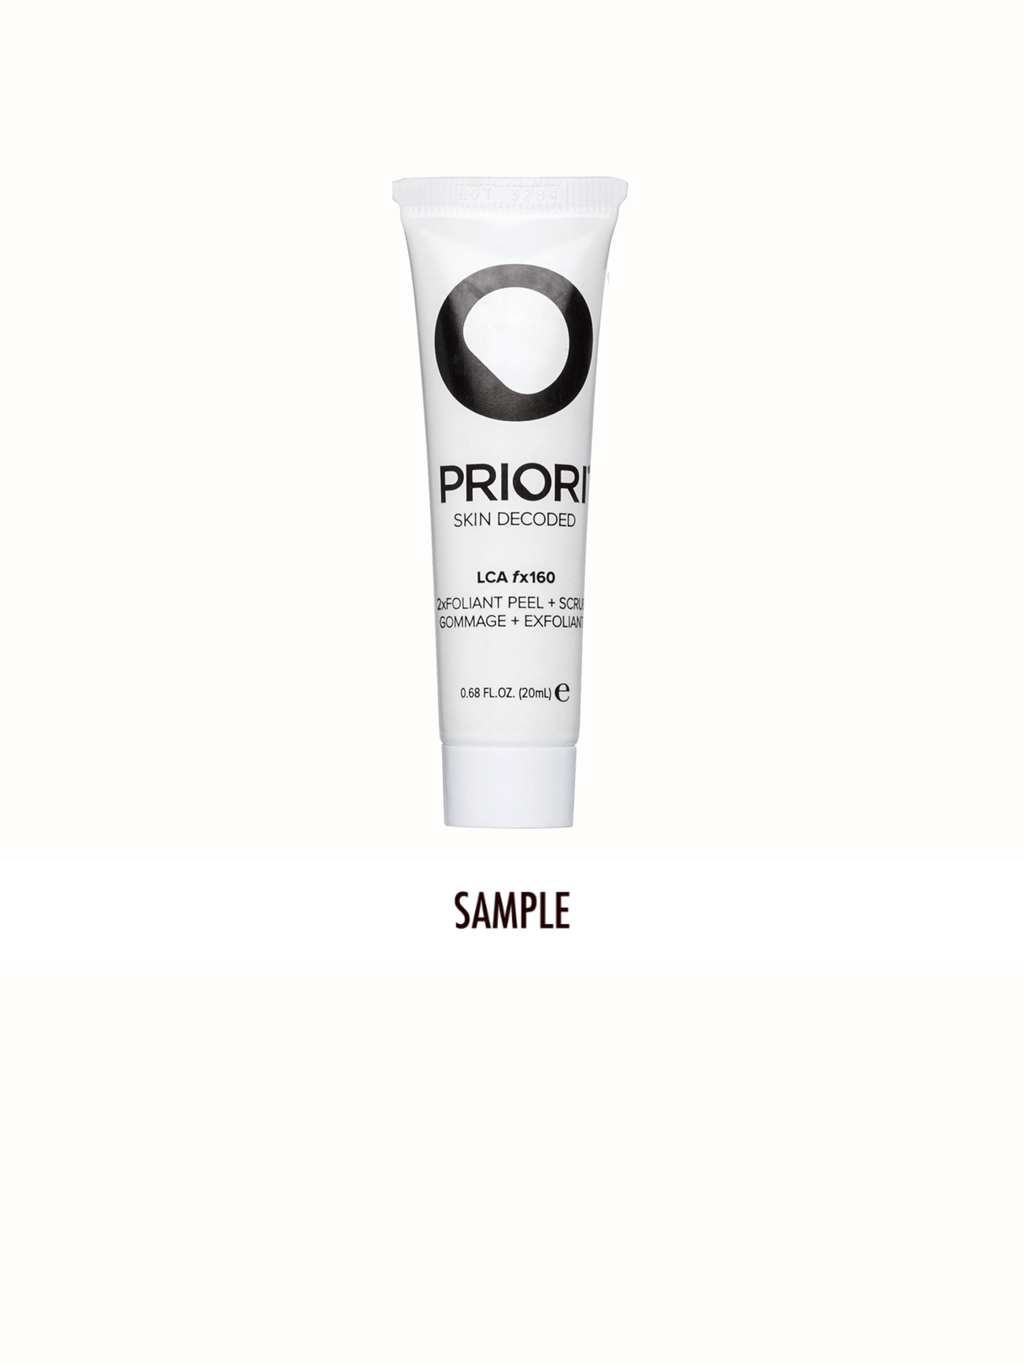 LCA fx160 2xfoliant Peel & Scrub | PRIORI Skincare | Deluxe Sample 20 ml (Tube)